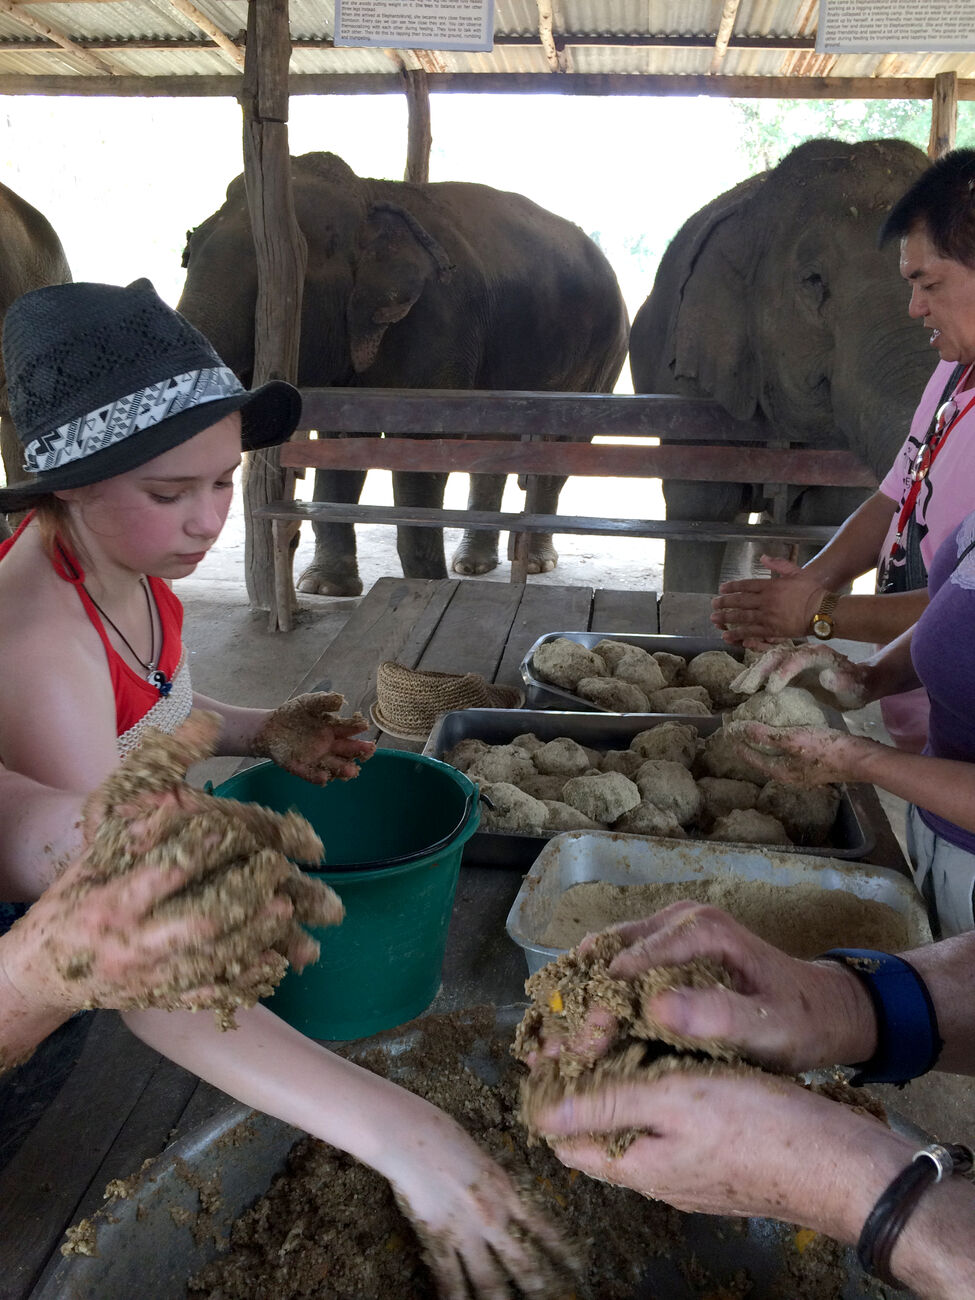 Visitors to the Elephants World sanctuary help make rice balls for the facility's older elephants, who have lost most of their teeth and can't eat their regular diet. Patrons of the rescue facility learn about interacting ethically as a tourist with Thailand's national animal, as well as putting in a little labour to help care for the gentle giants.